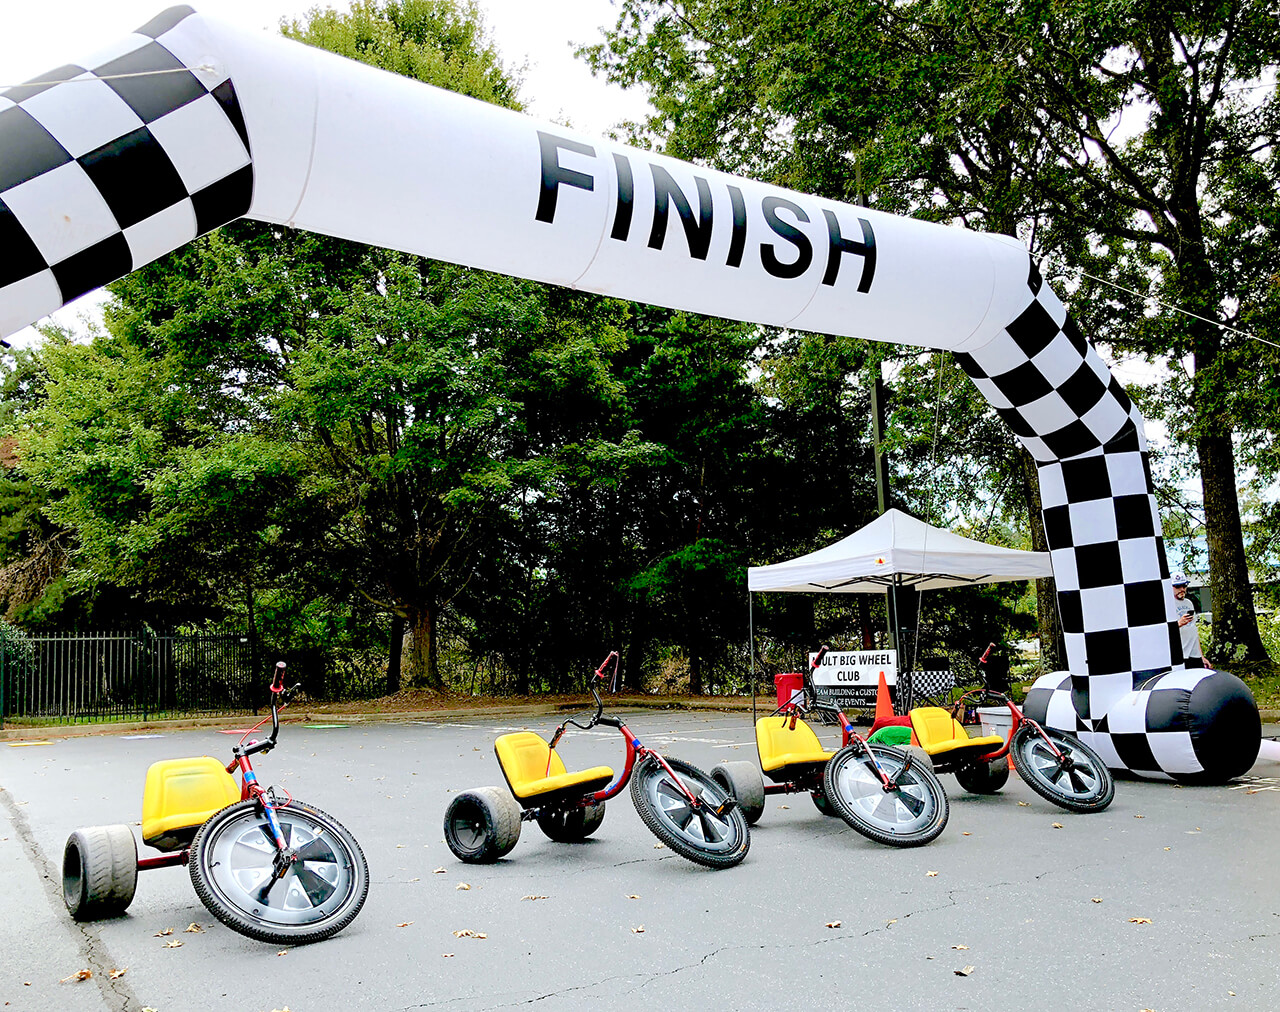 At the finish line, we are ready for your team we host one of a kind adult and youth activities